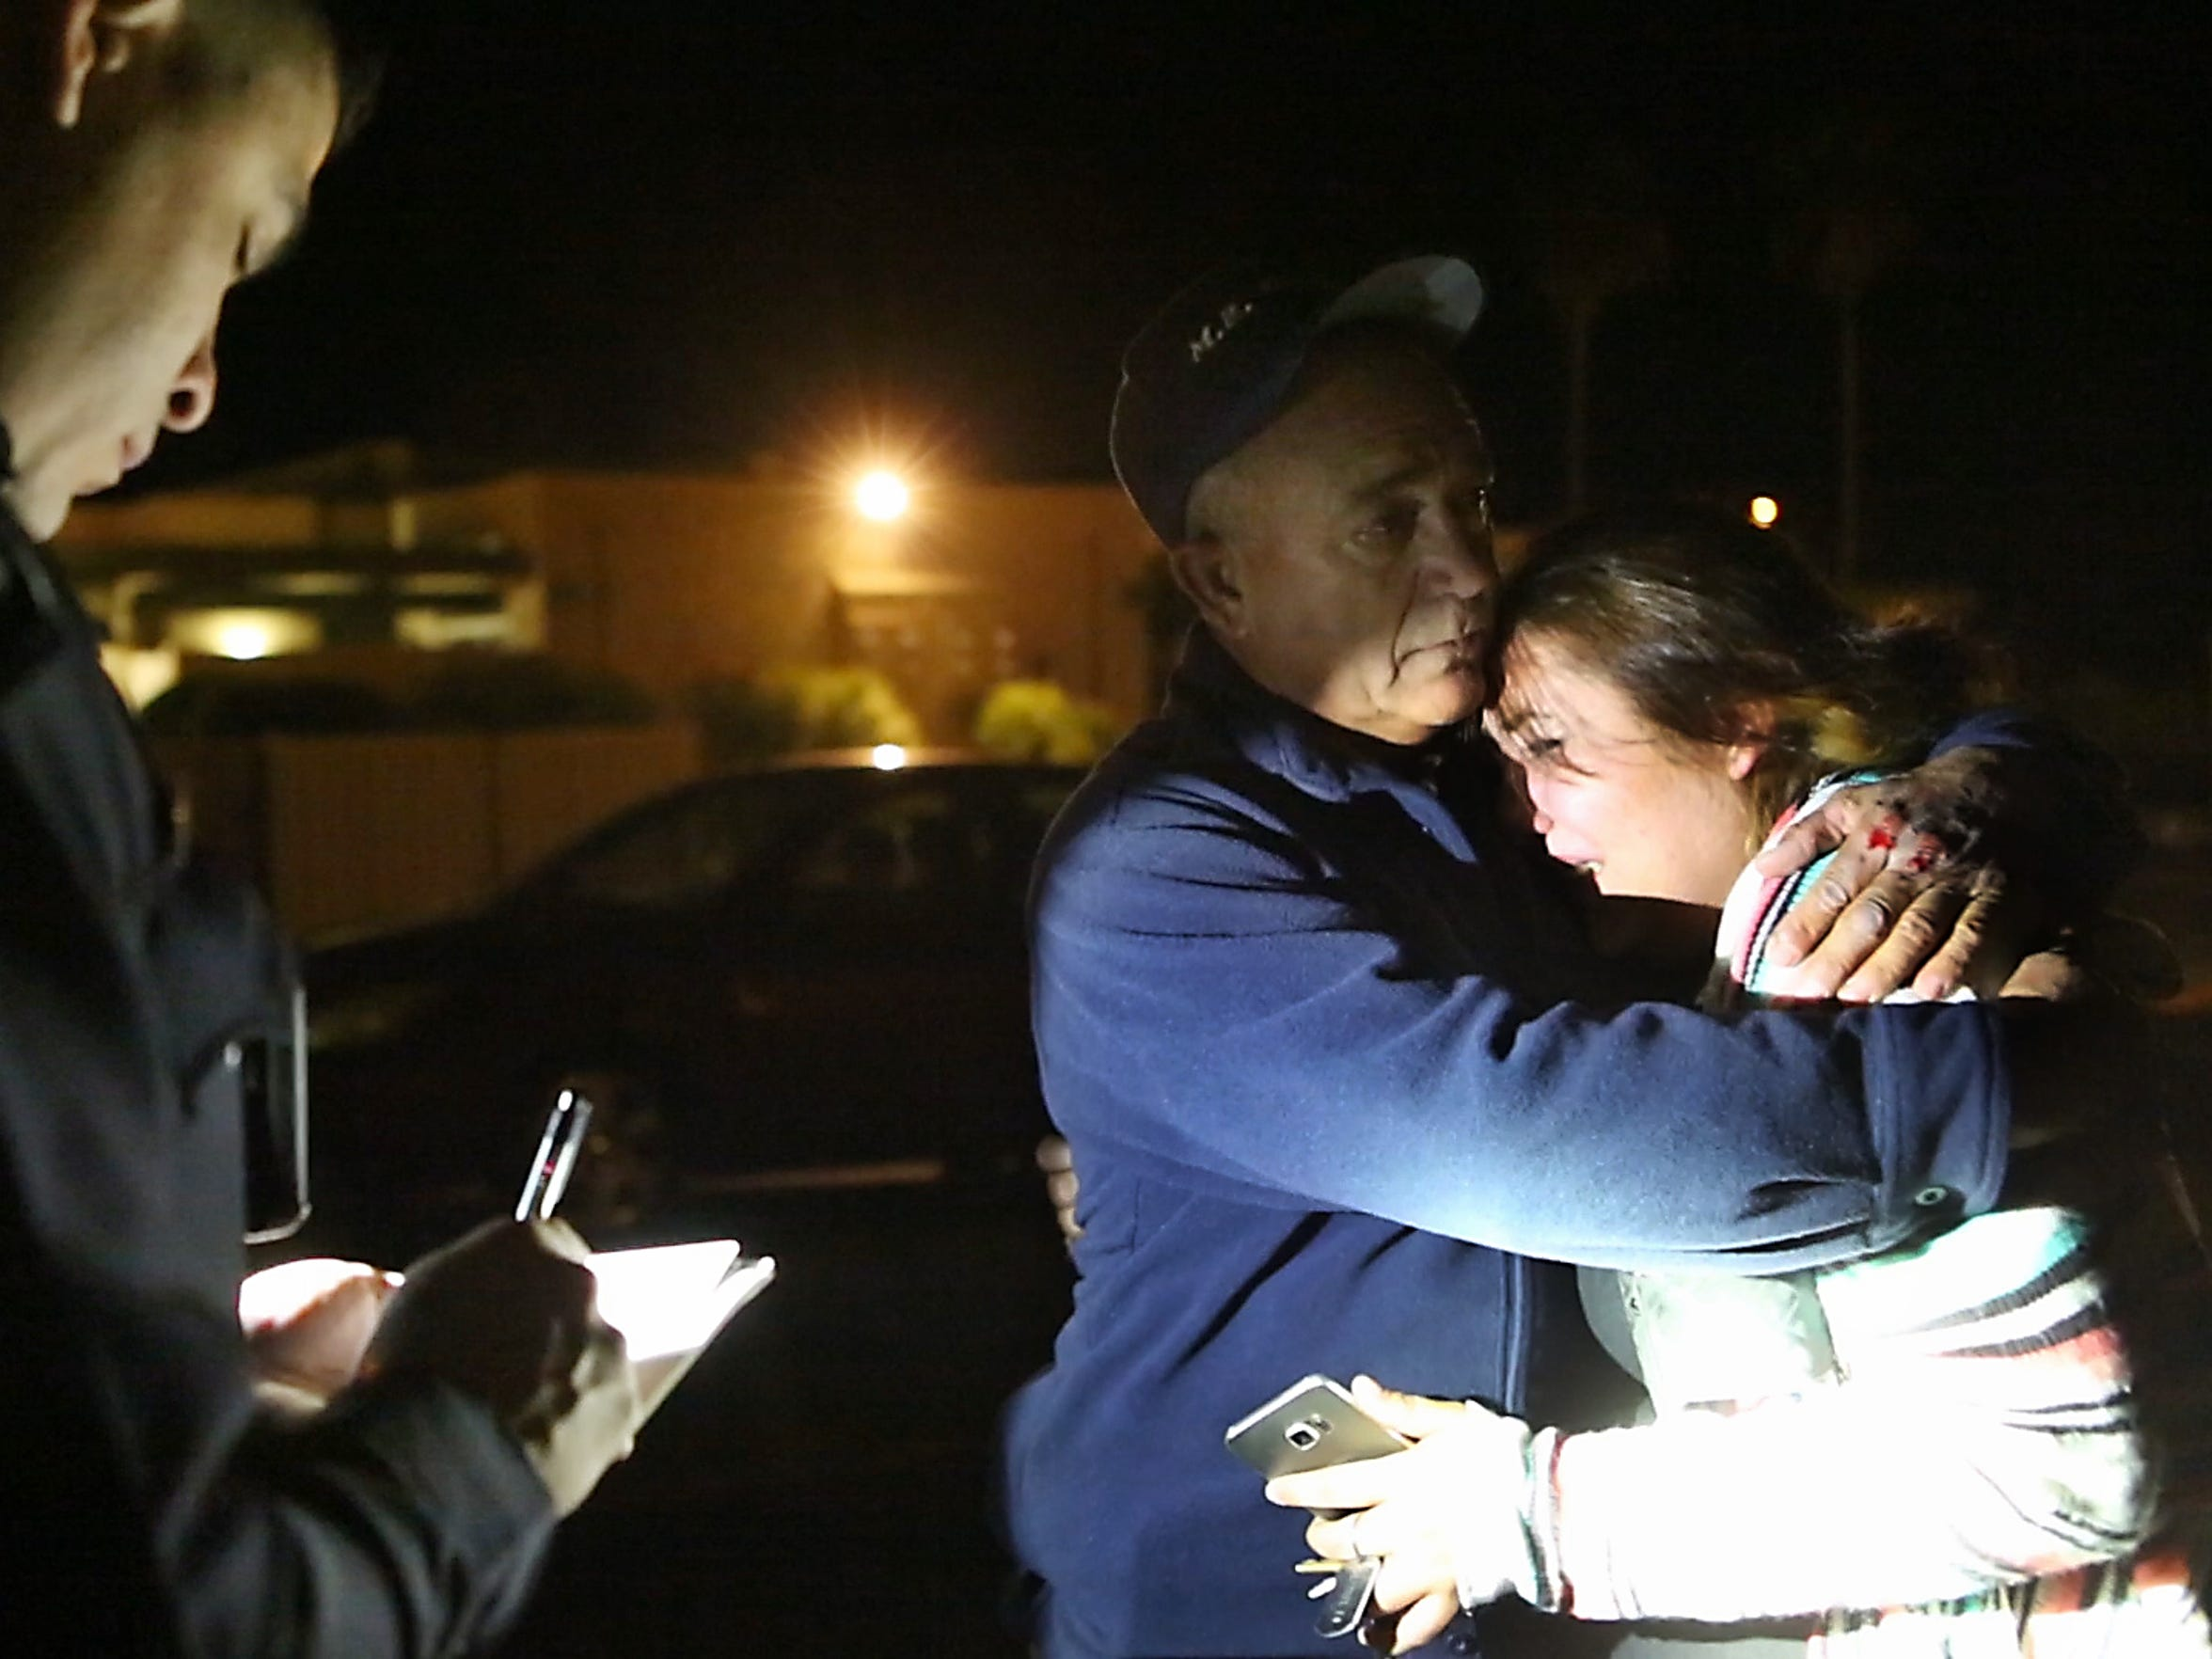 Officer Adam Perez takes down a report as an uncle comforts his niece in Desert Hot Springs.